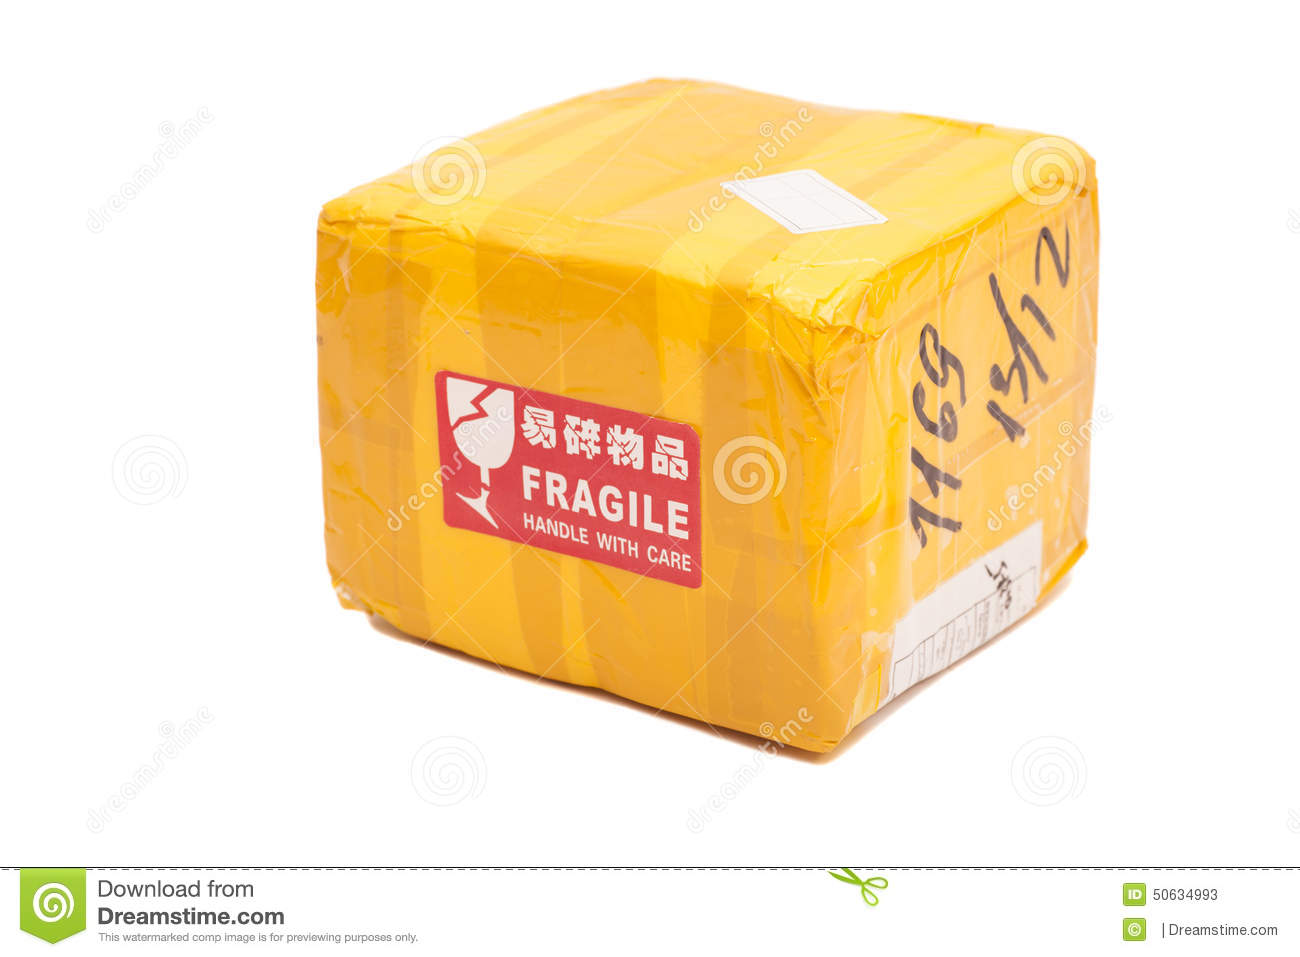 Postal package box or shipping box